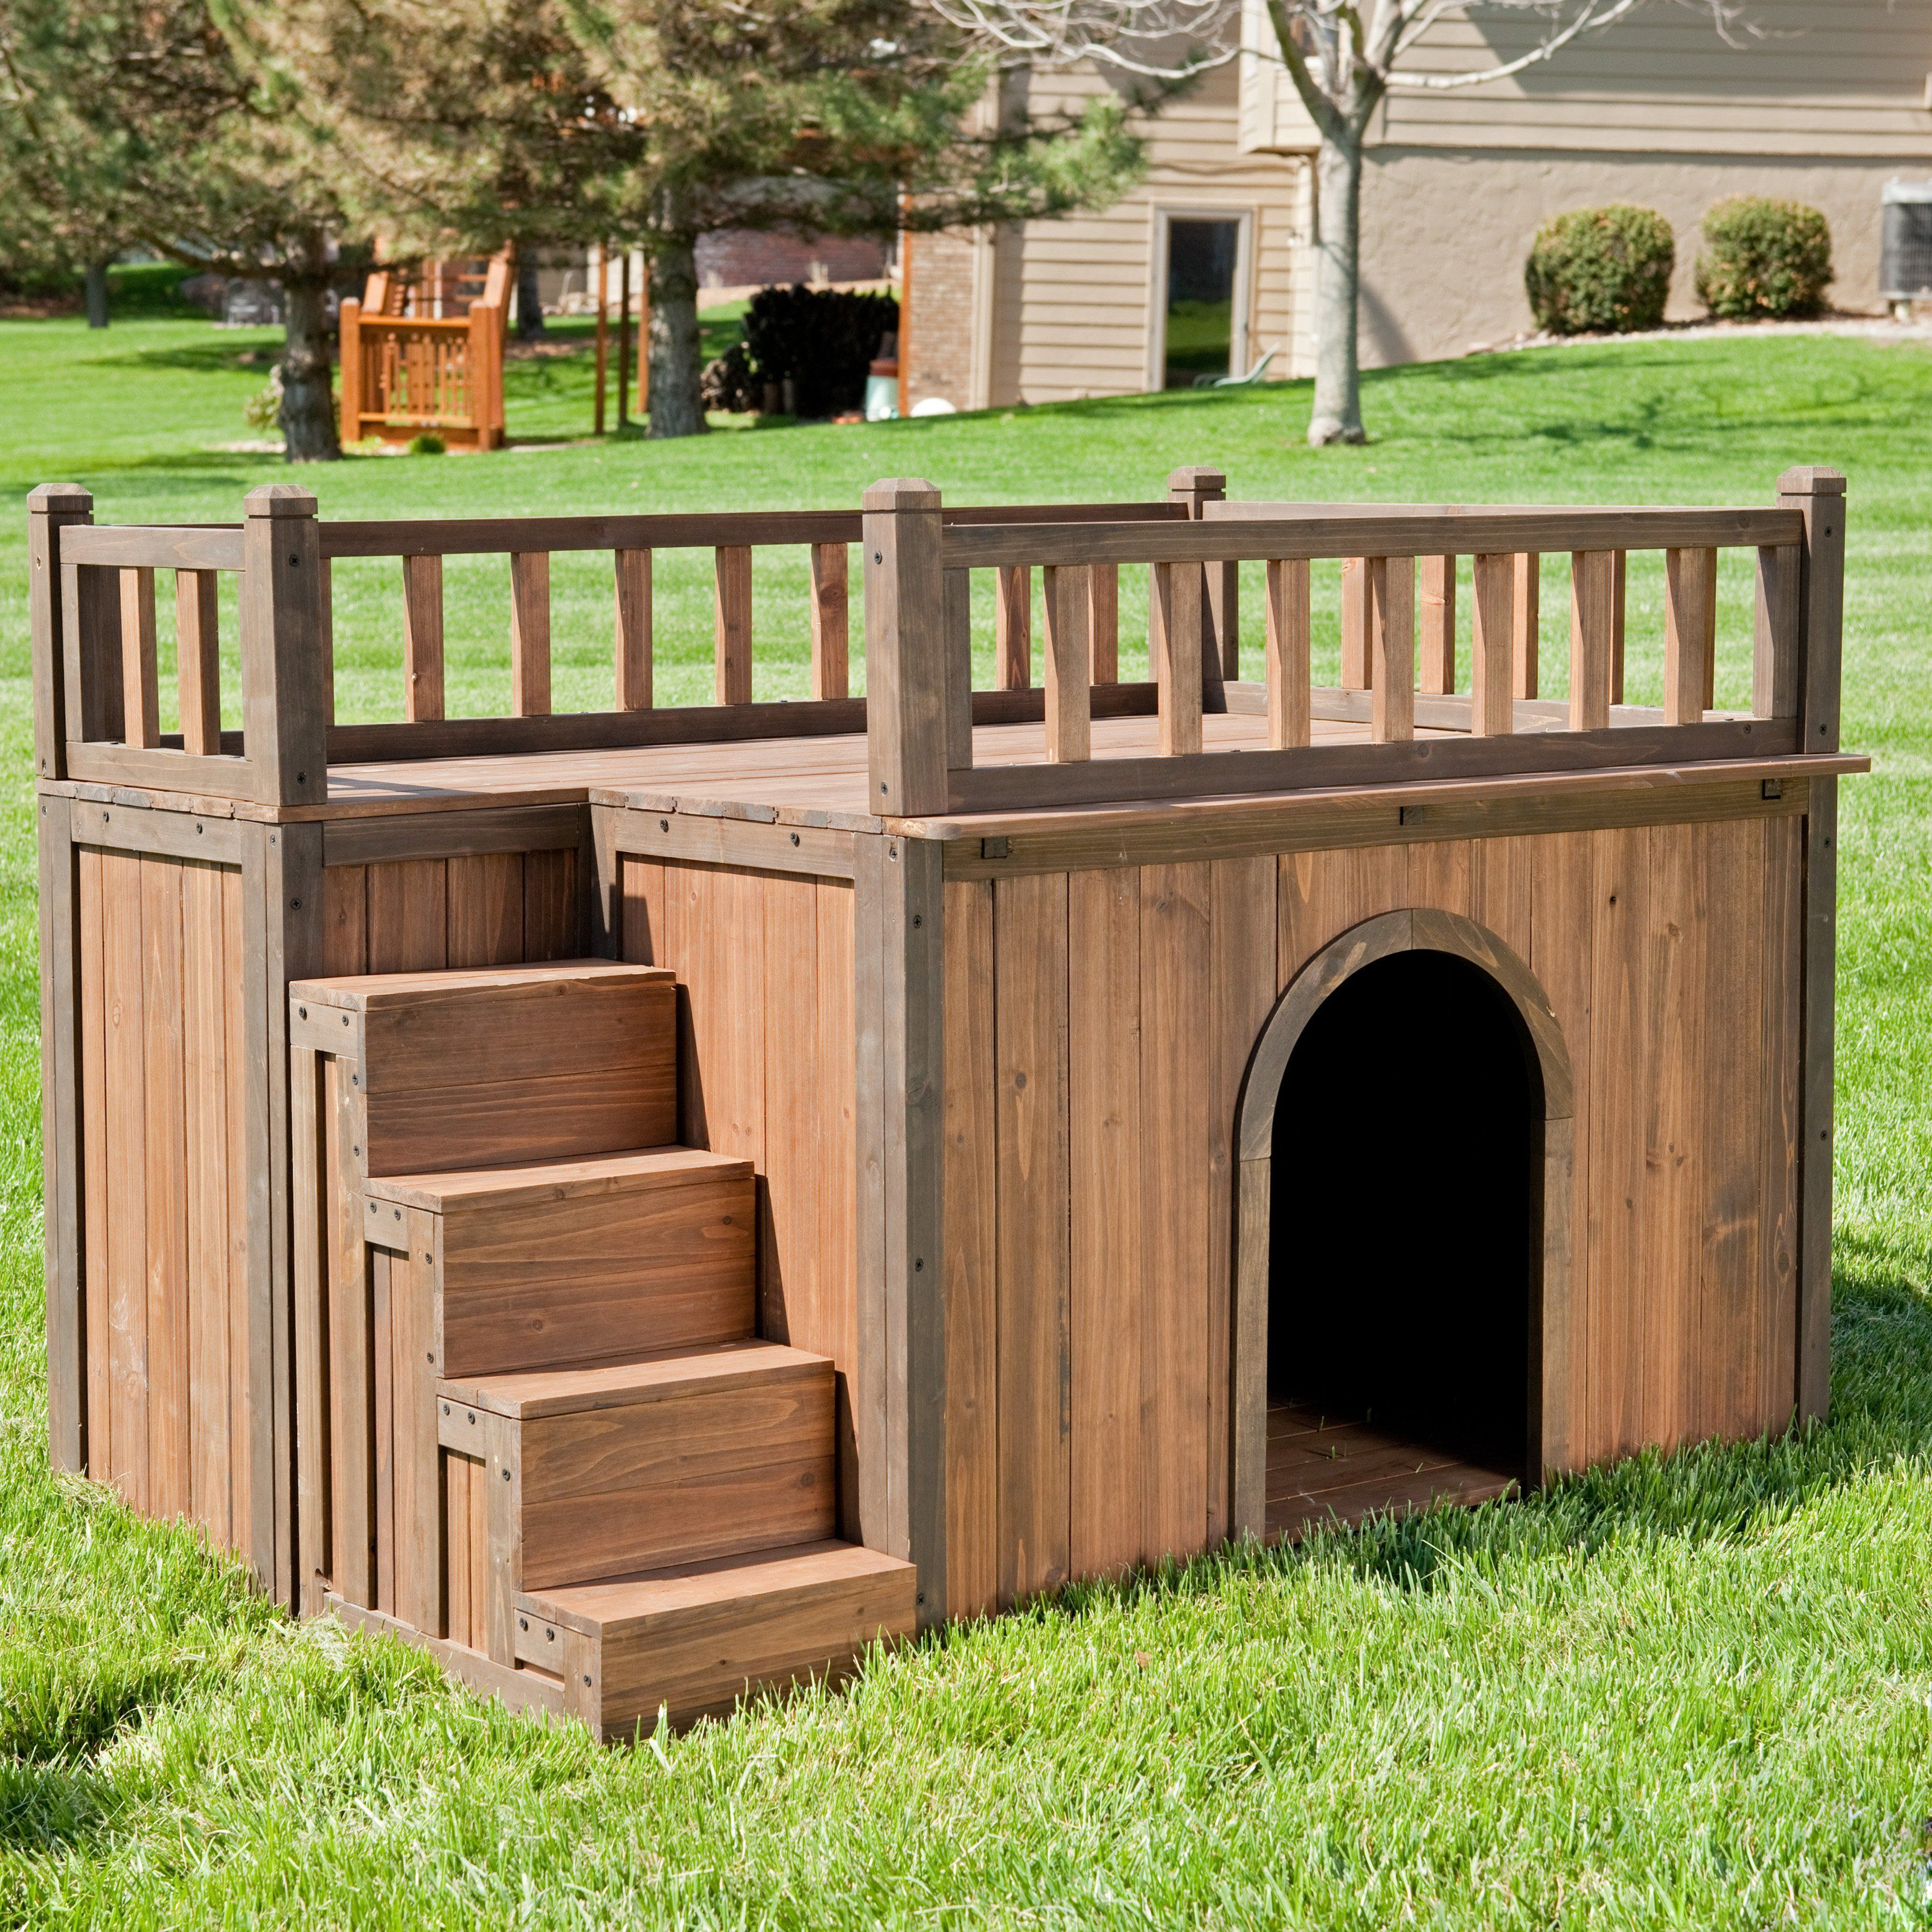 Boomer  amp  George Stair Case Dog House   Heater   Stair Case  Dog    Boomer  amp  George Stair Case Dog House   Heater   Stair Case  Dog Houses and Stairs